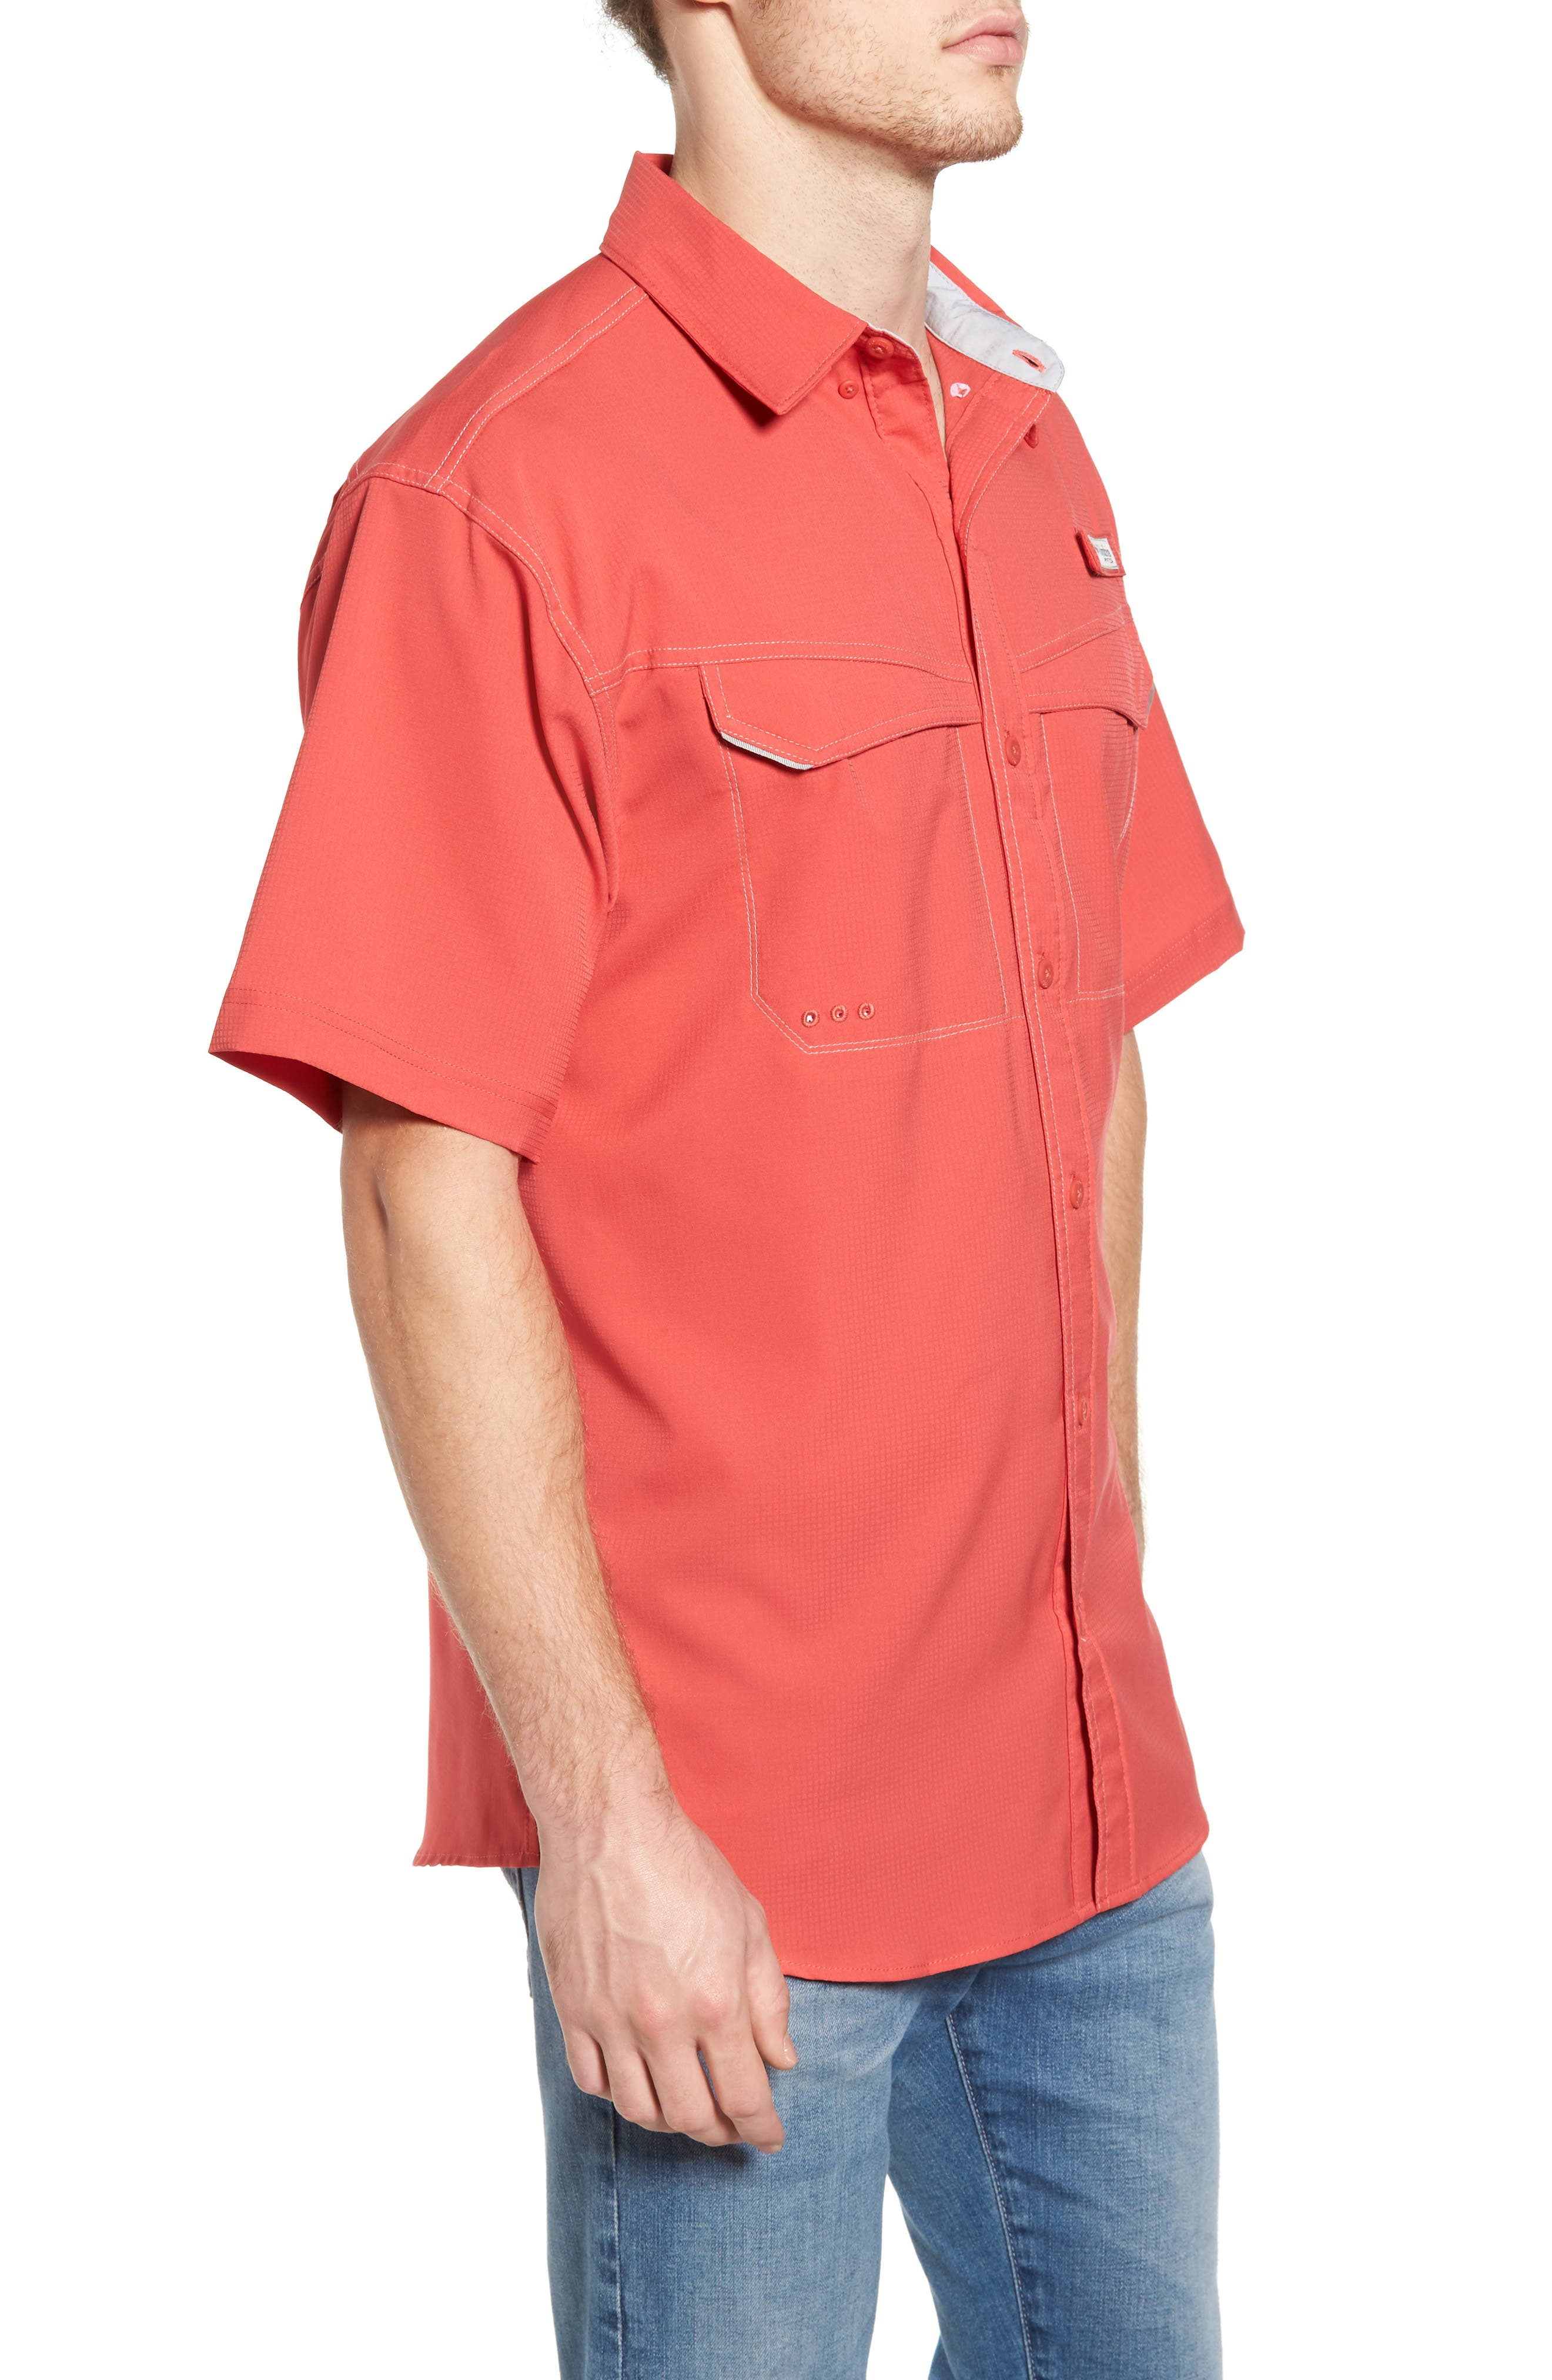 PFG Low Drag Offshore Woven Shirt,                             Alternate thumbnail 14, color,